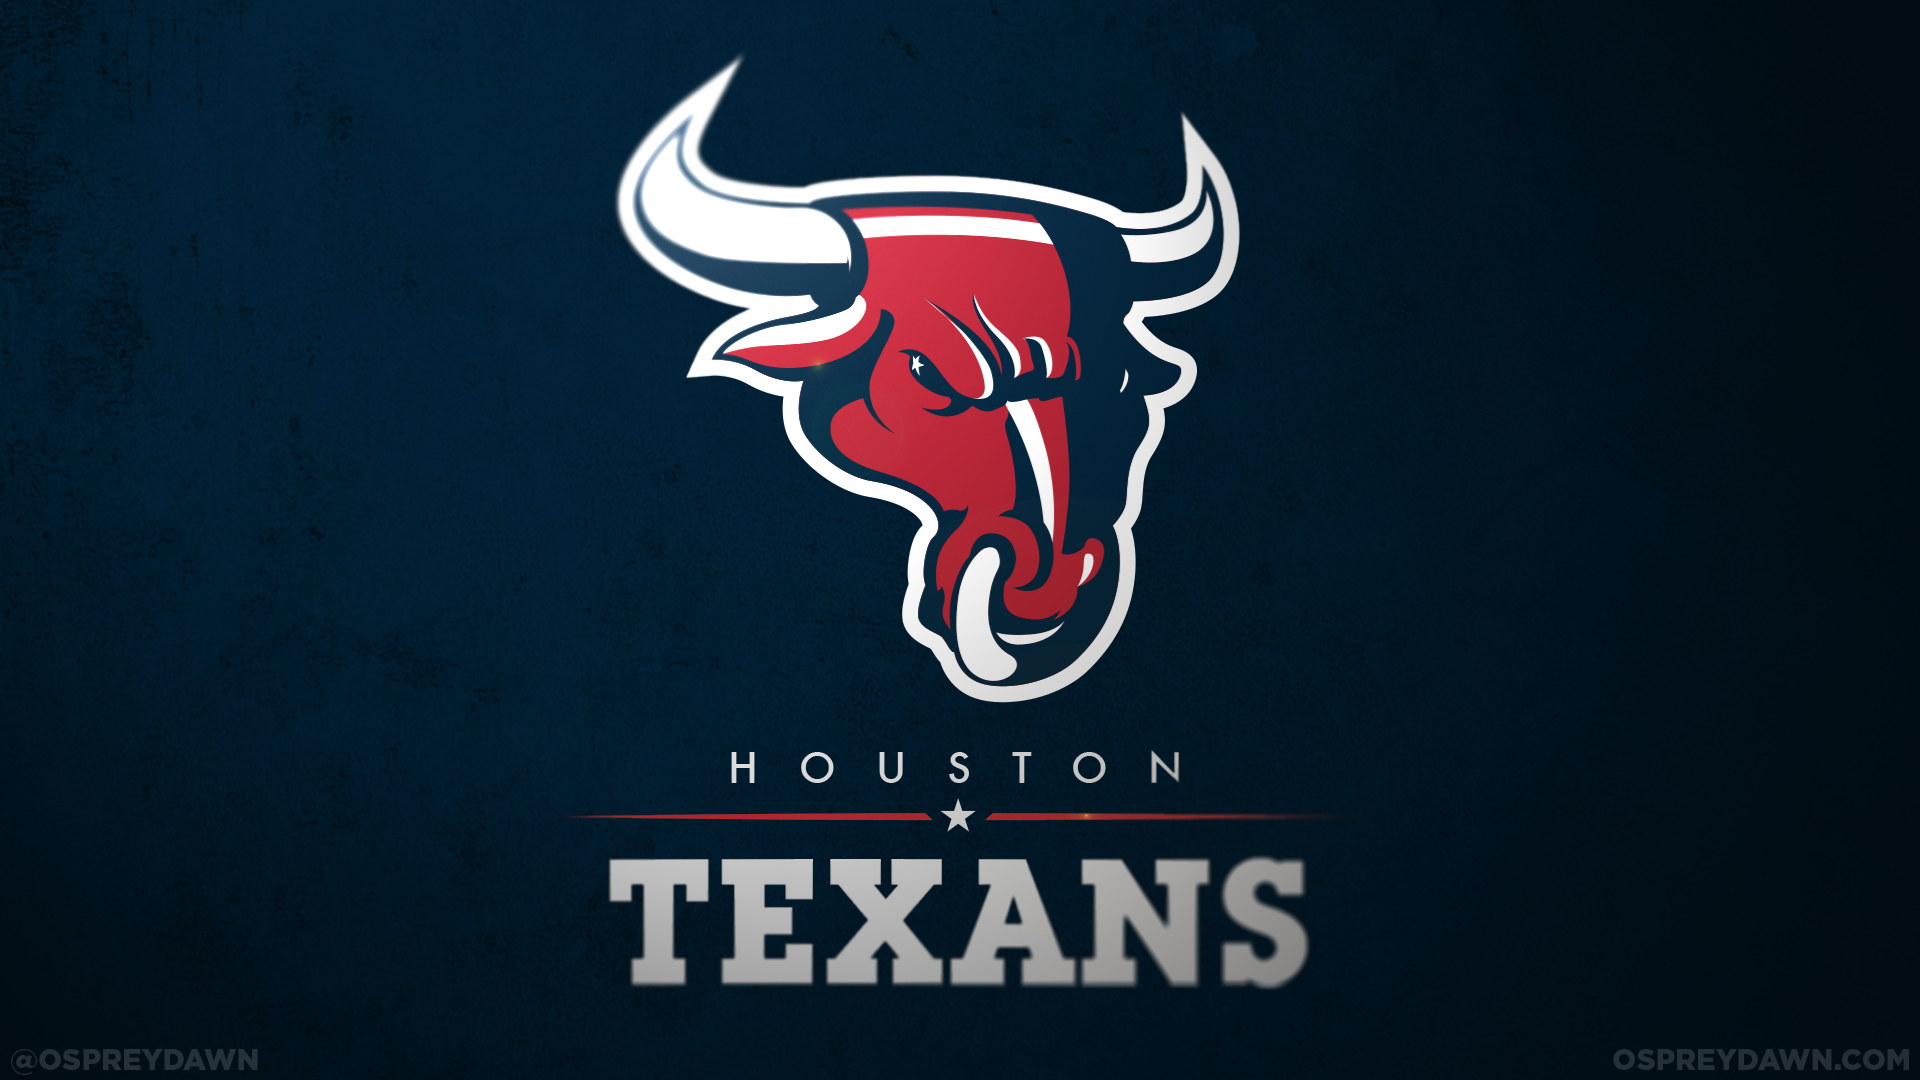 HOUSTON TEXANS nfl football f wallpaper 1920x1080 156217 1920x1080